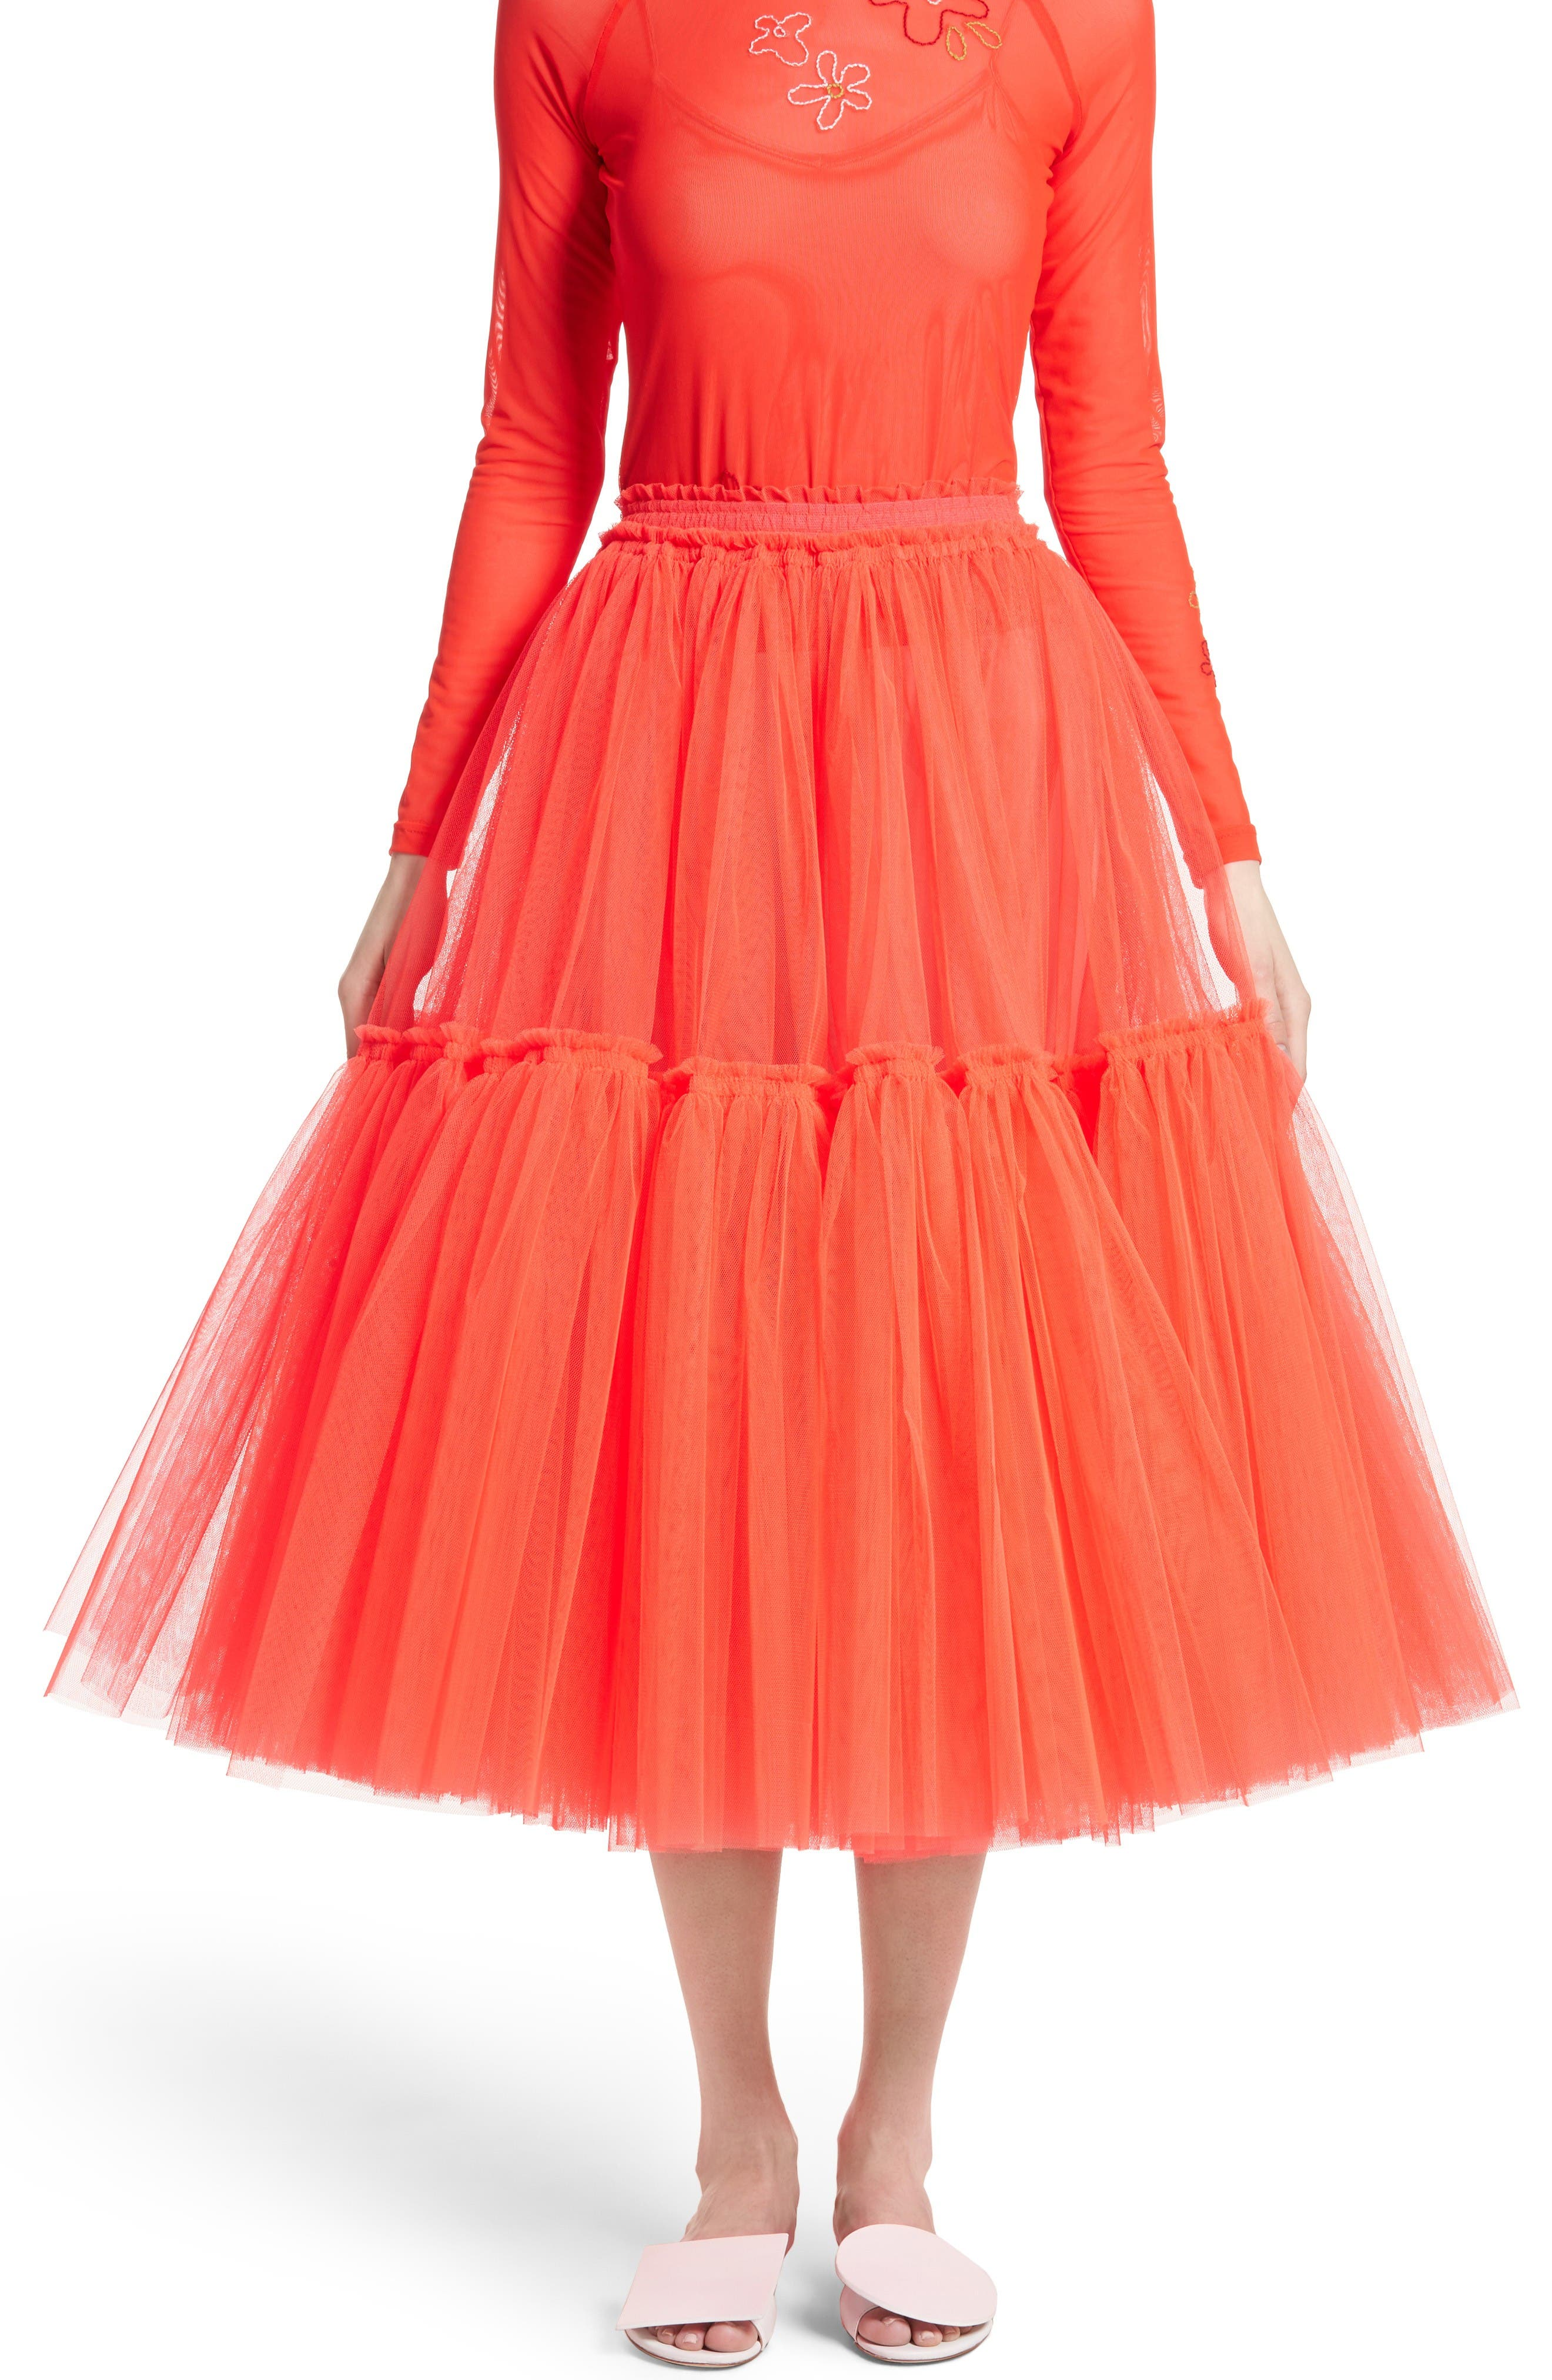 Molly Goddard Gathered Tulle Skirt (Nordstrom Exclusive)